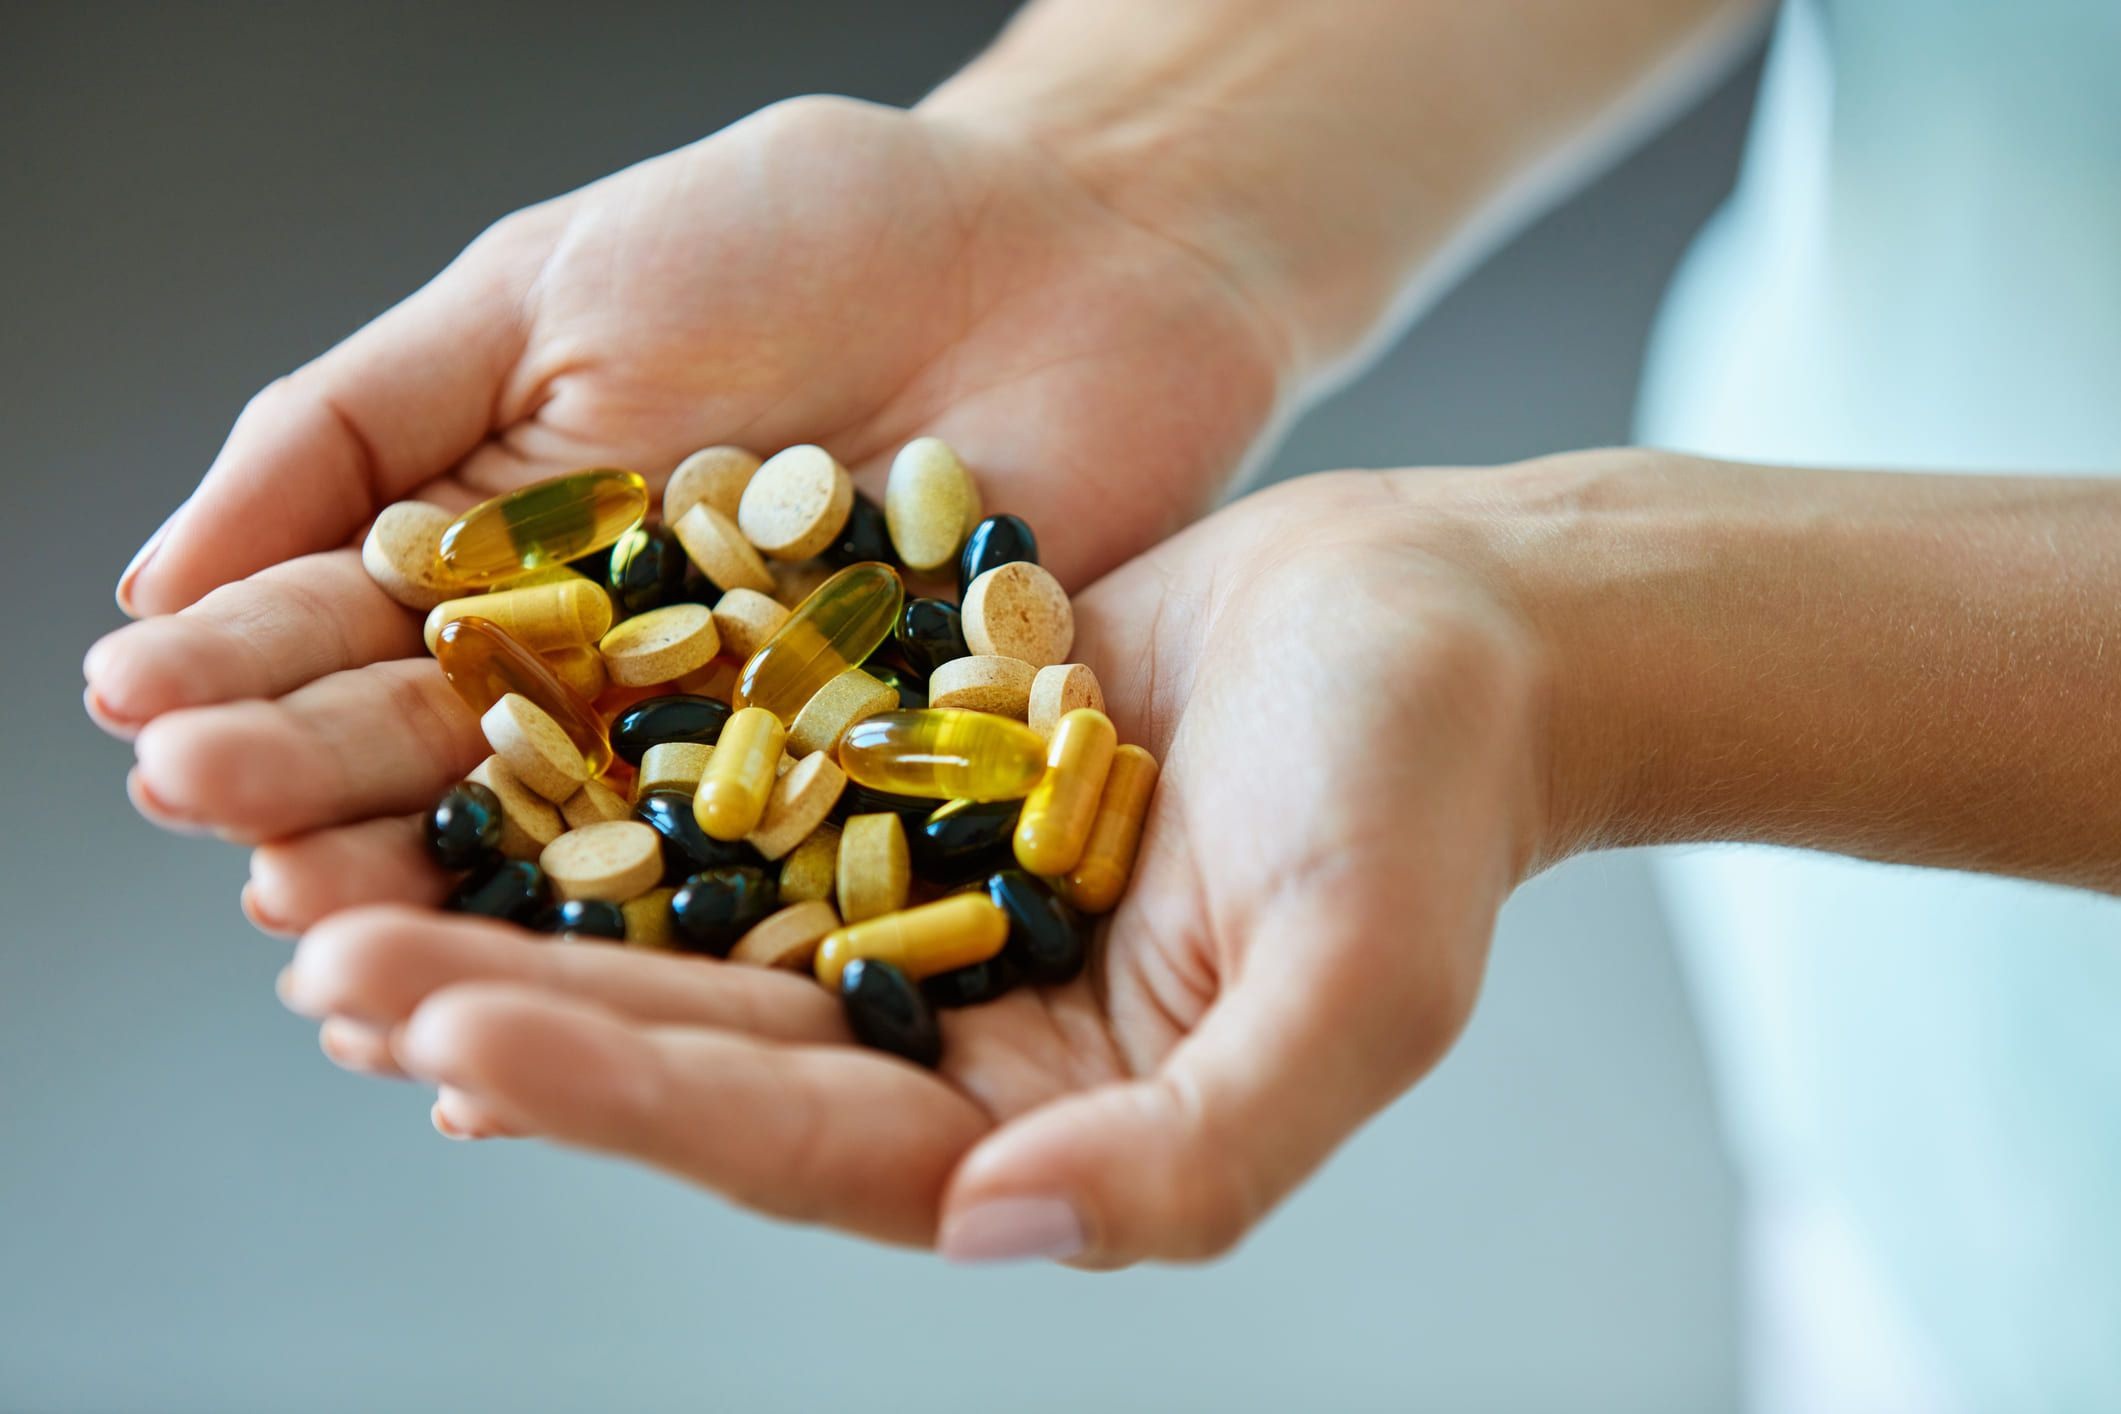 Viatmins and Supplements